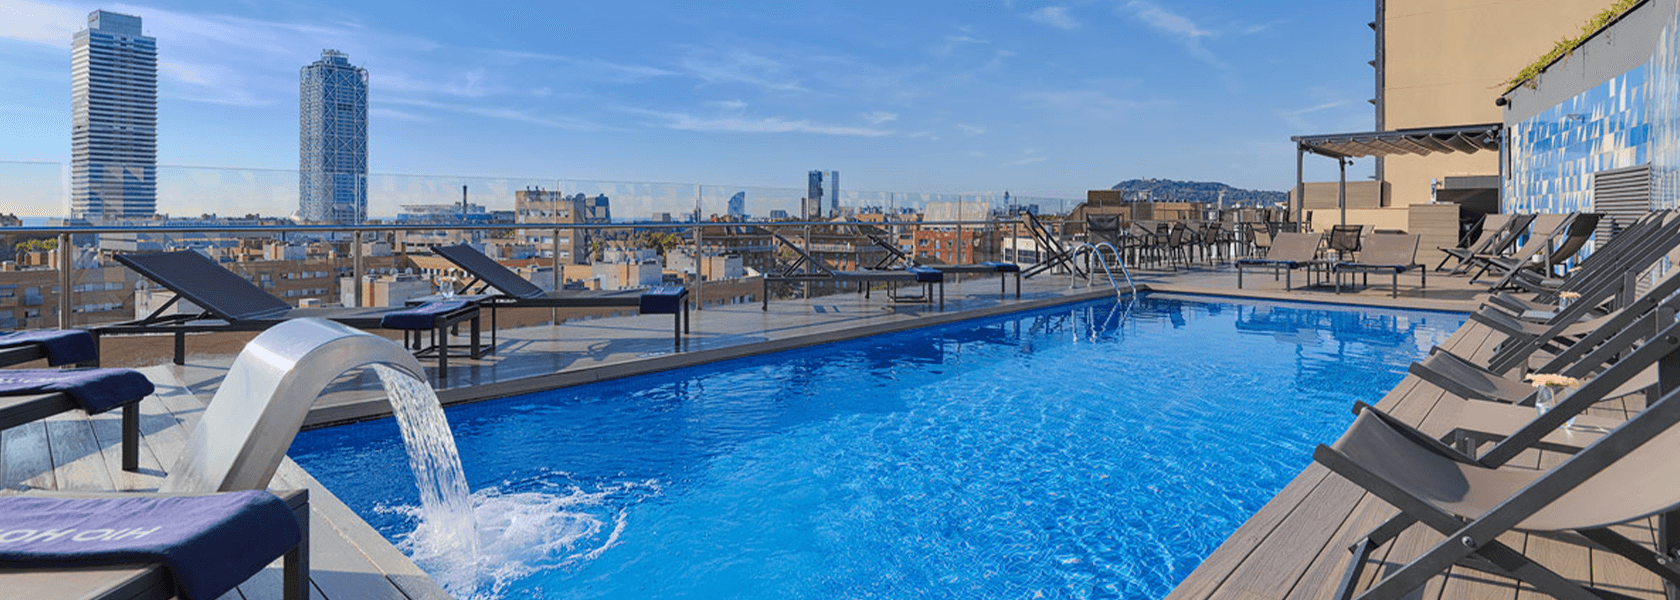 Hotel H10 Barcelona - rooftop pool